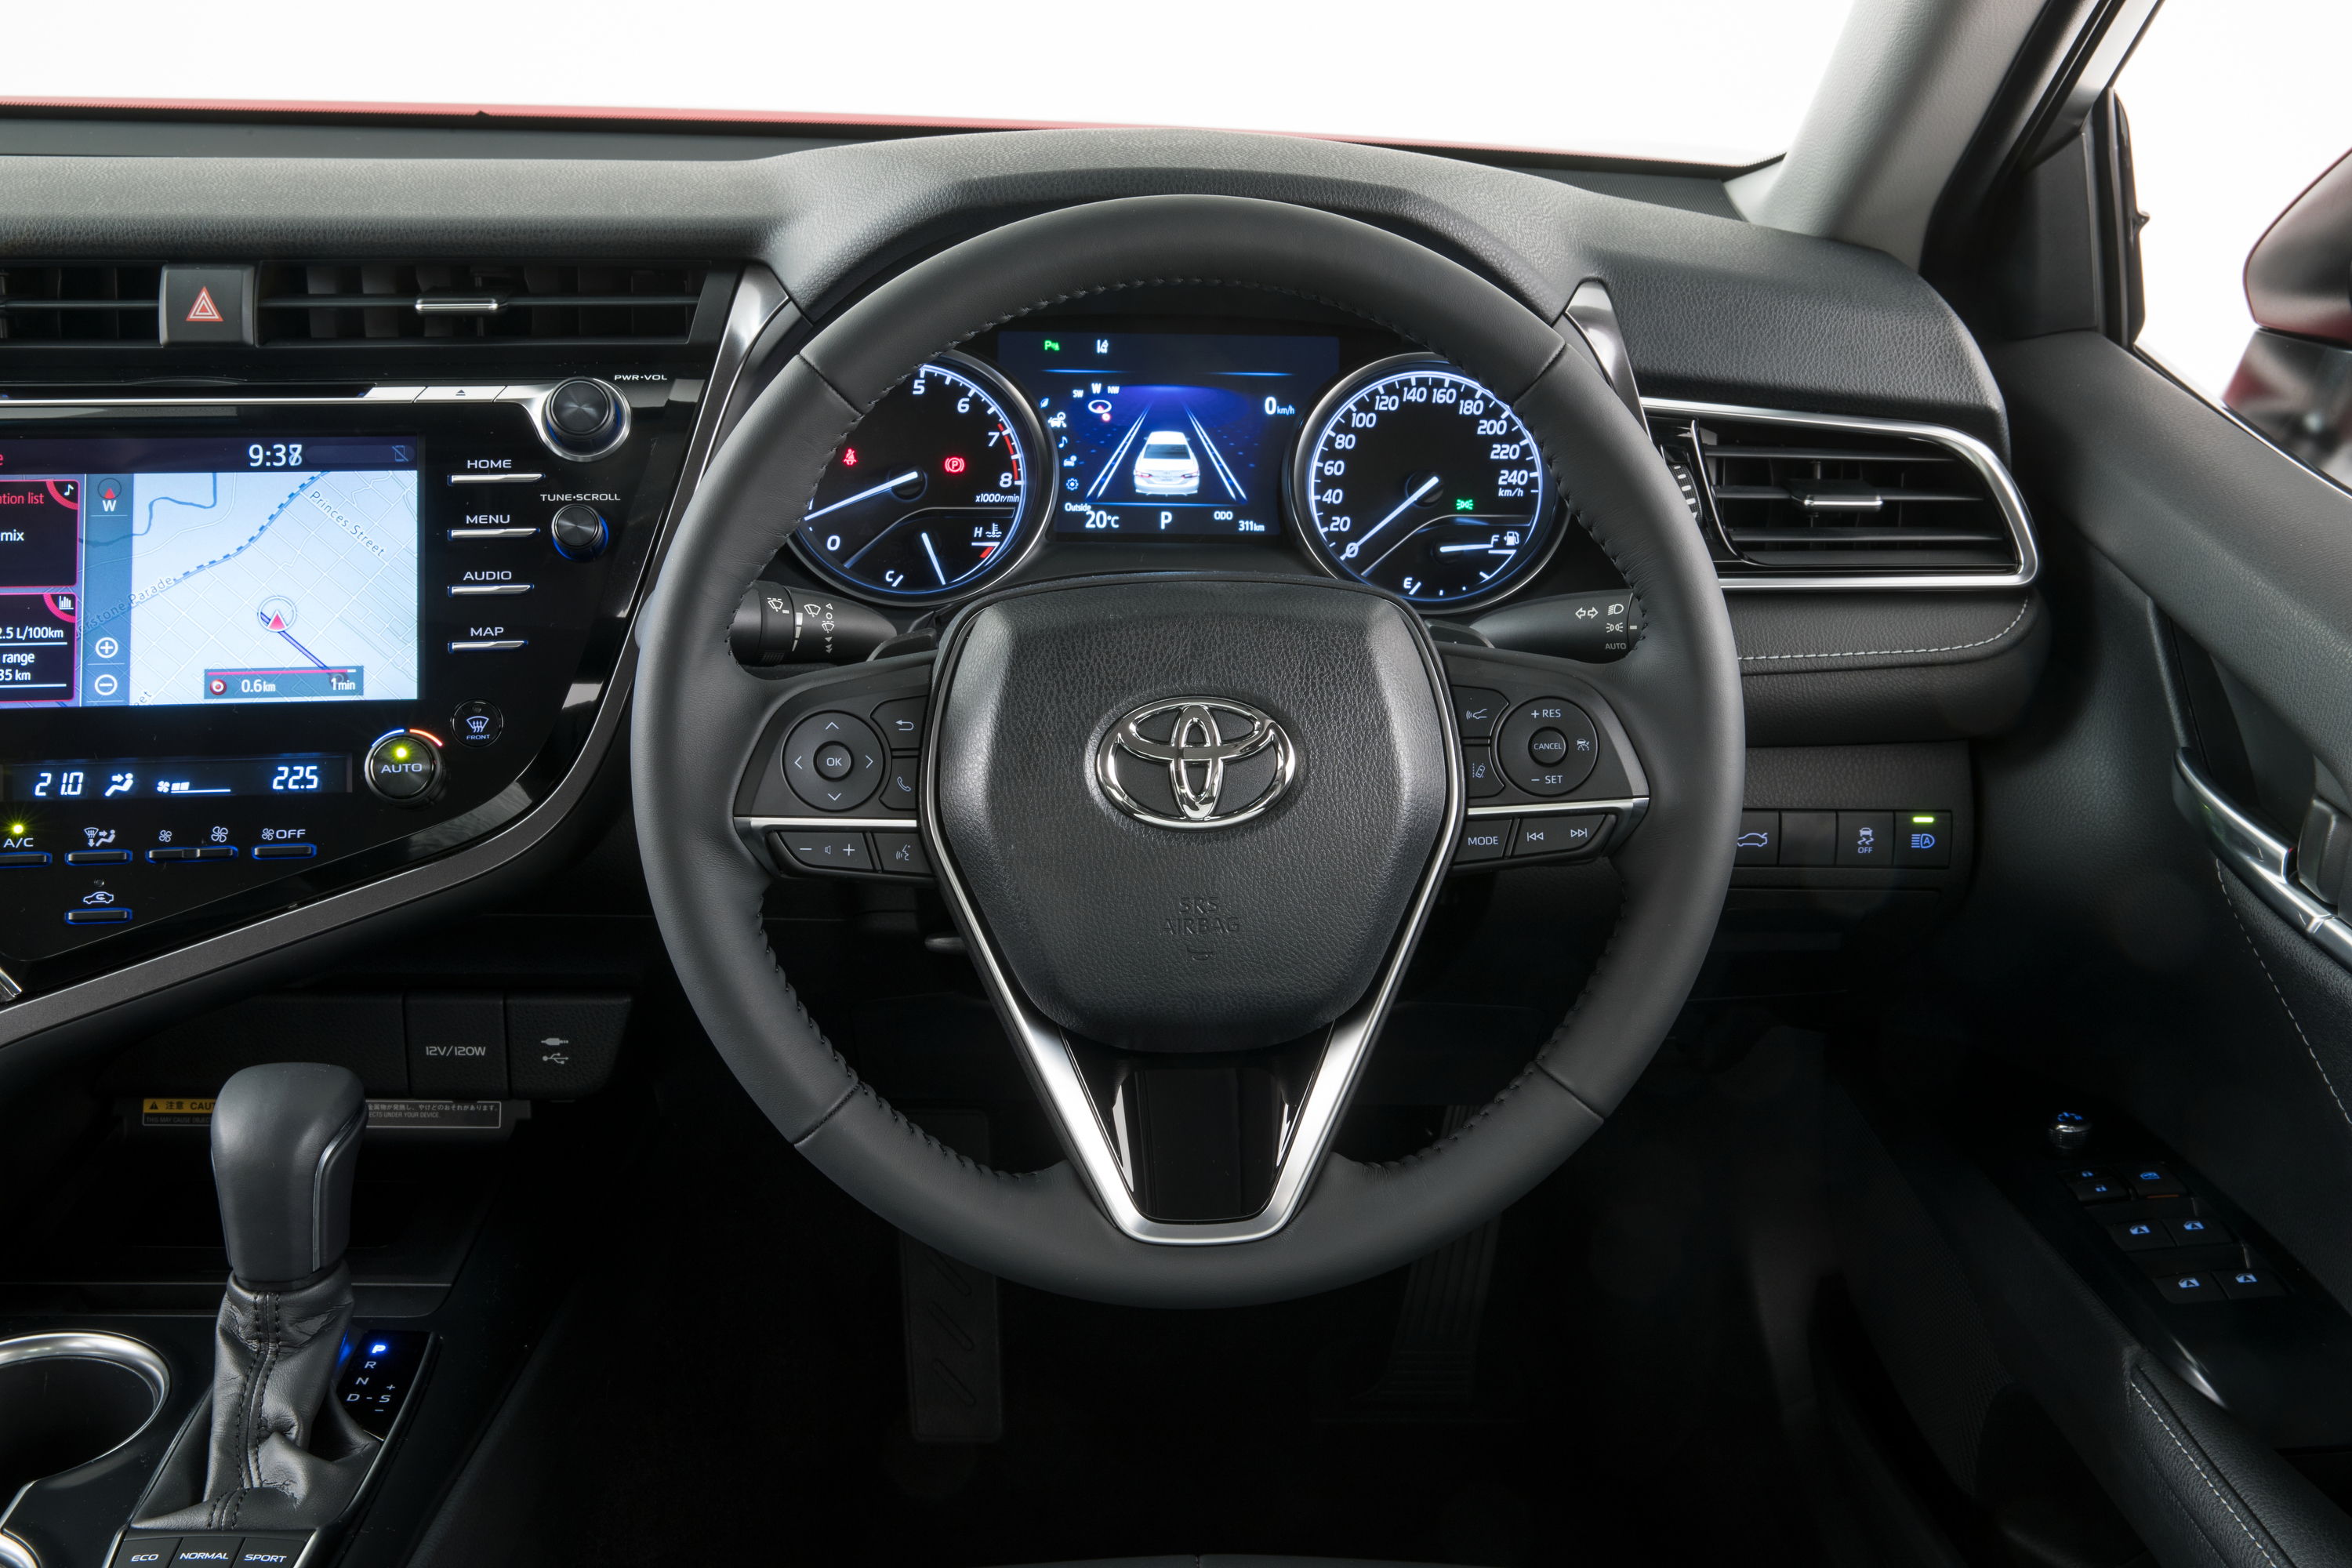 2018 Toyota Camry pricing and specs - Photos (1 of 31)